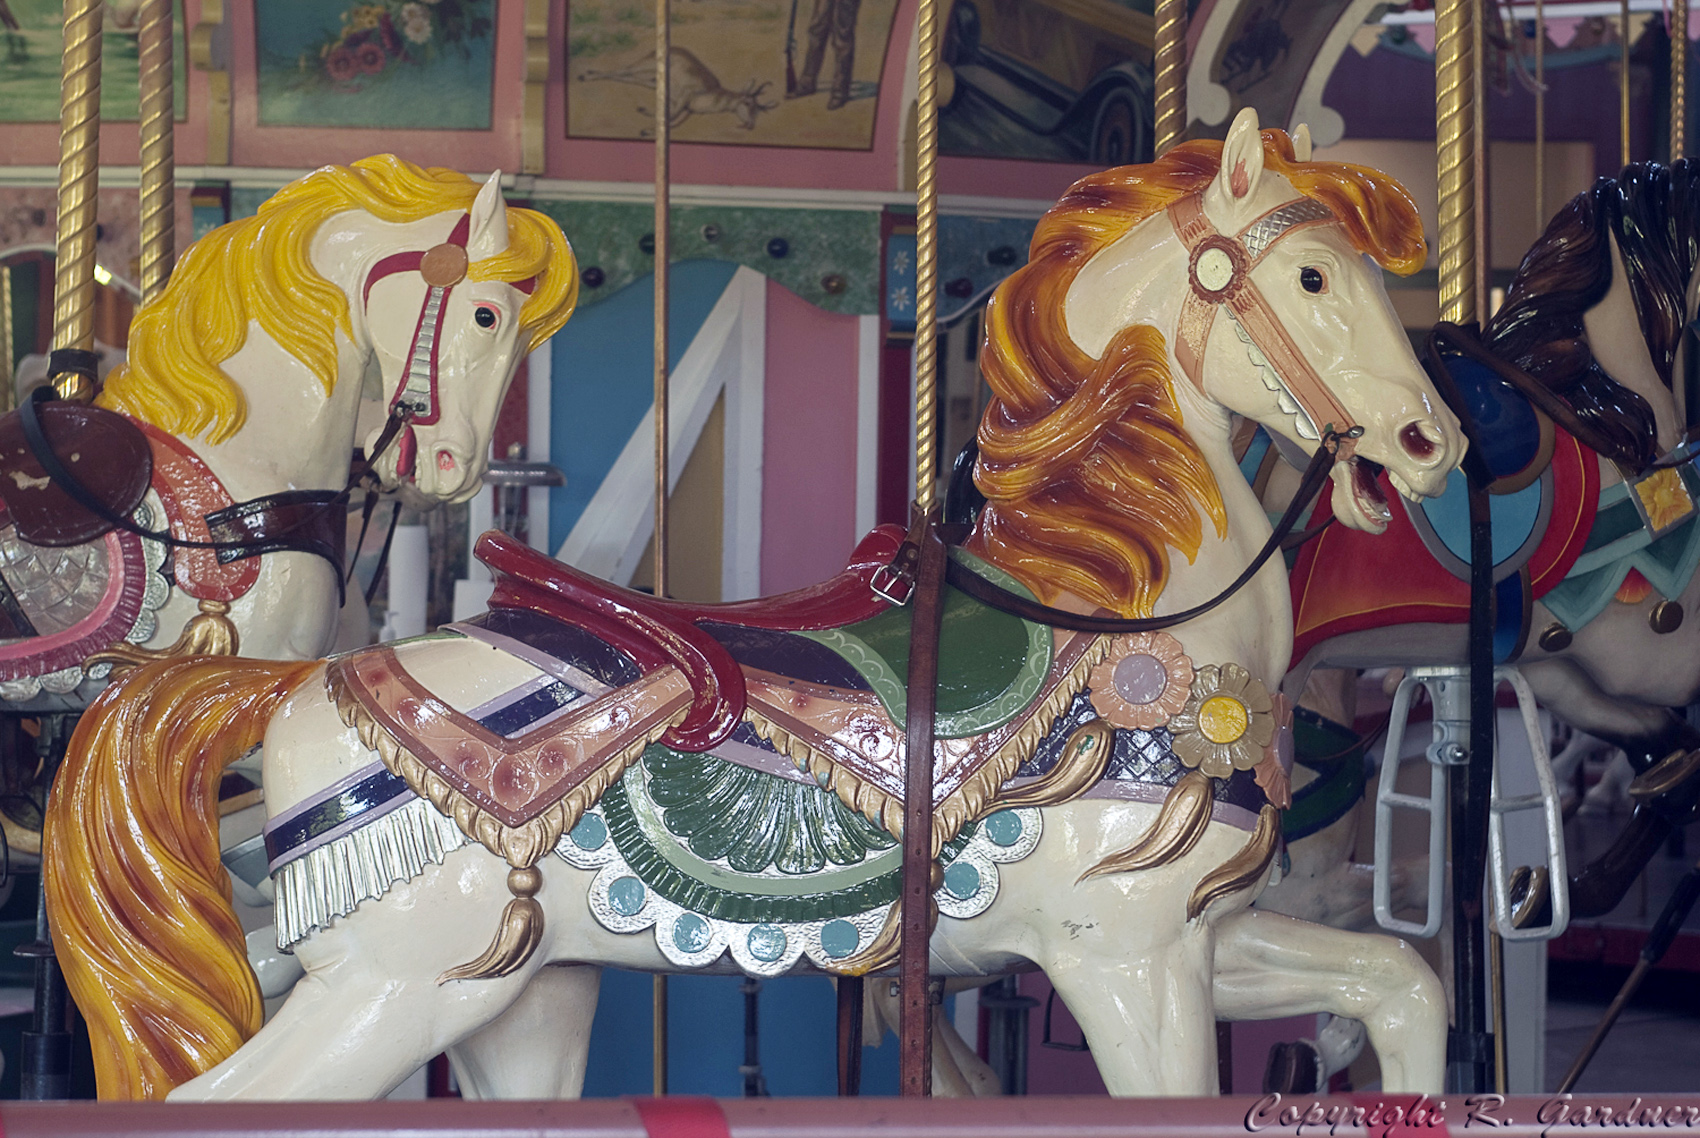 PTC-80-Holyoke-carousel-horse-Richard-Gardner-photo